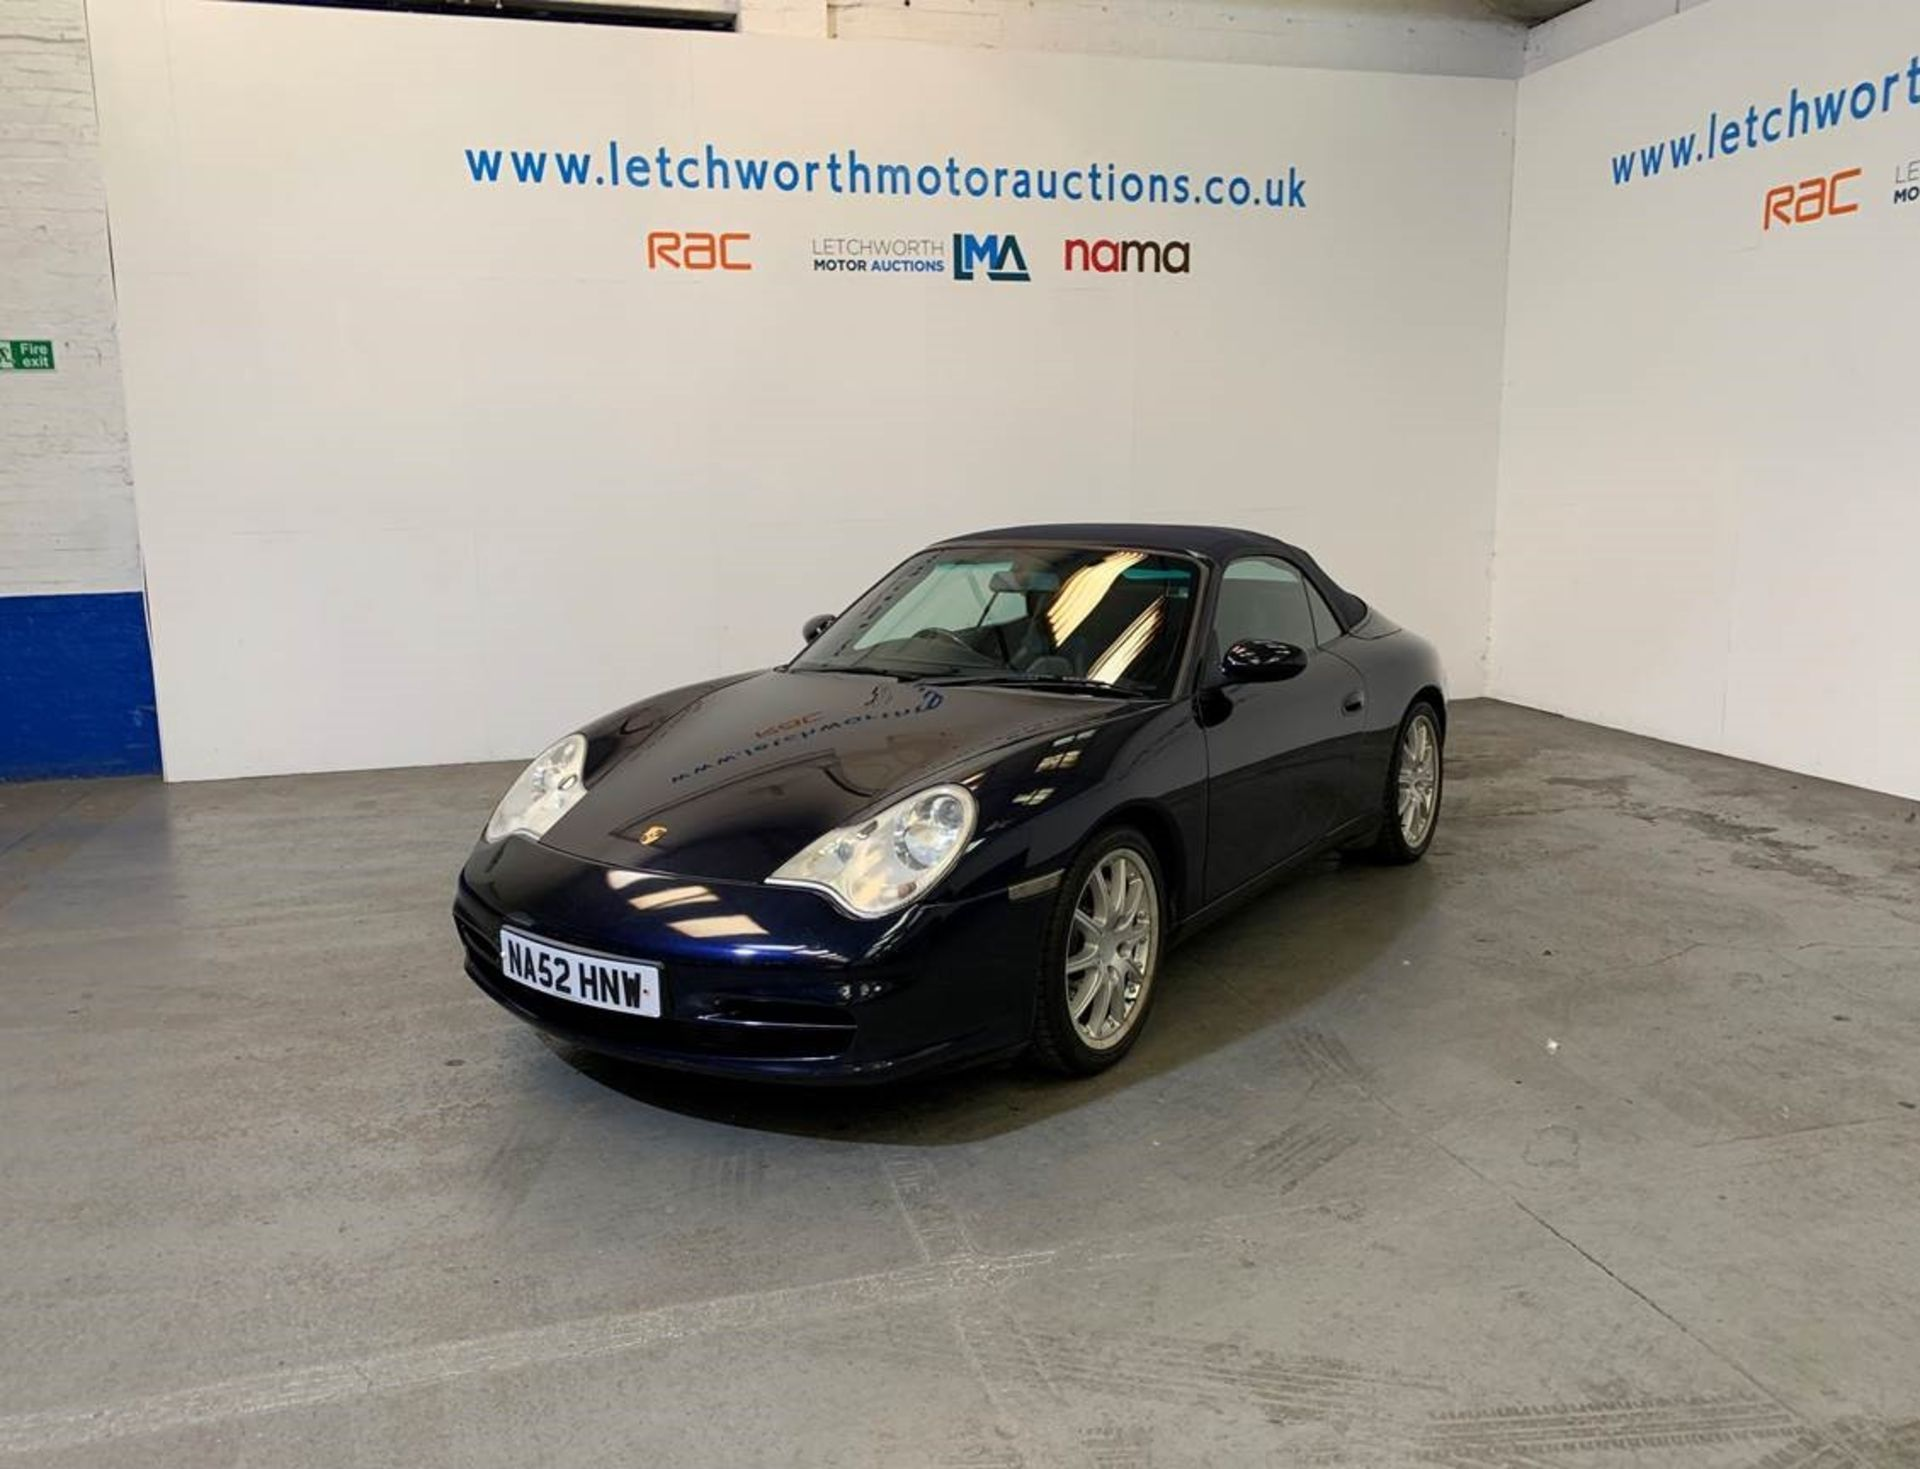 Lot 19 - 2002 Porsche 911 Carrera 4 Tiptronic - 3596cc